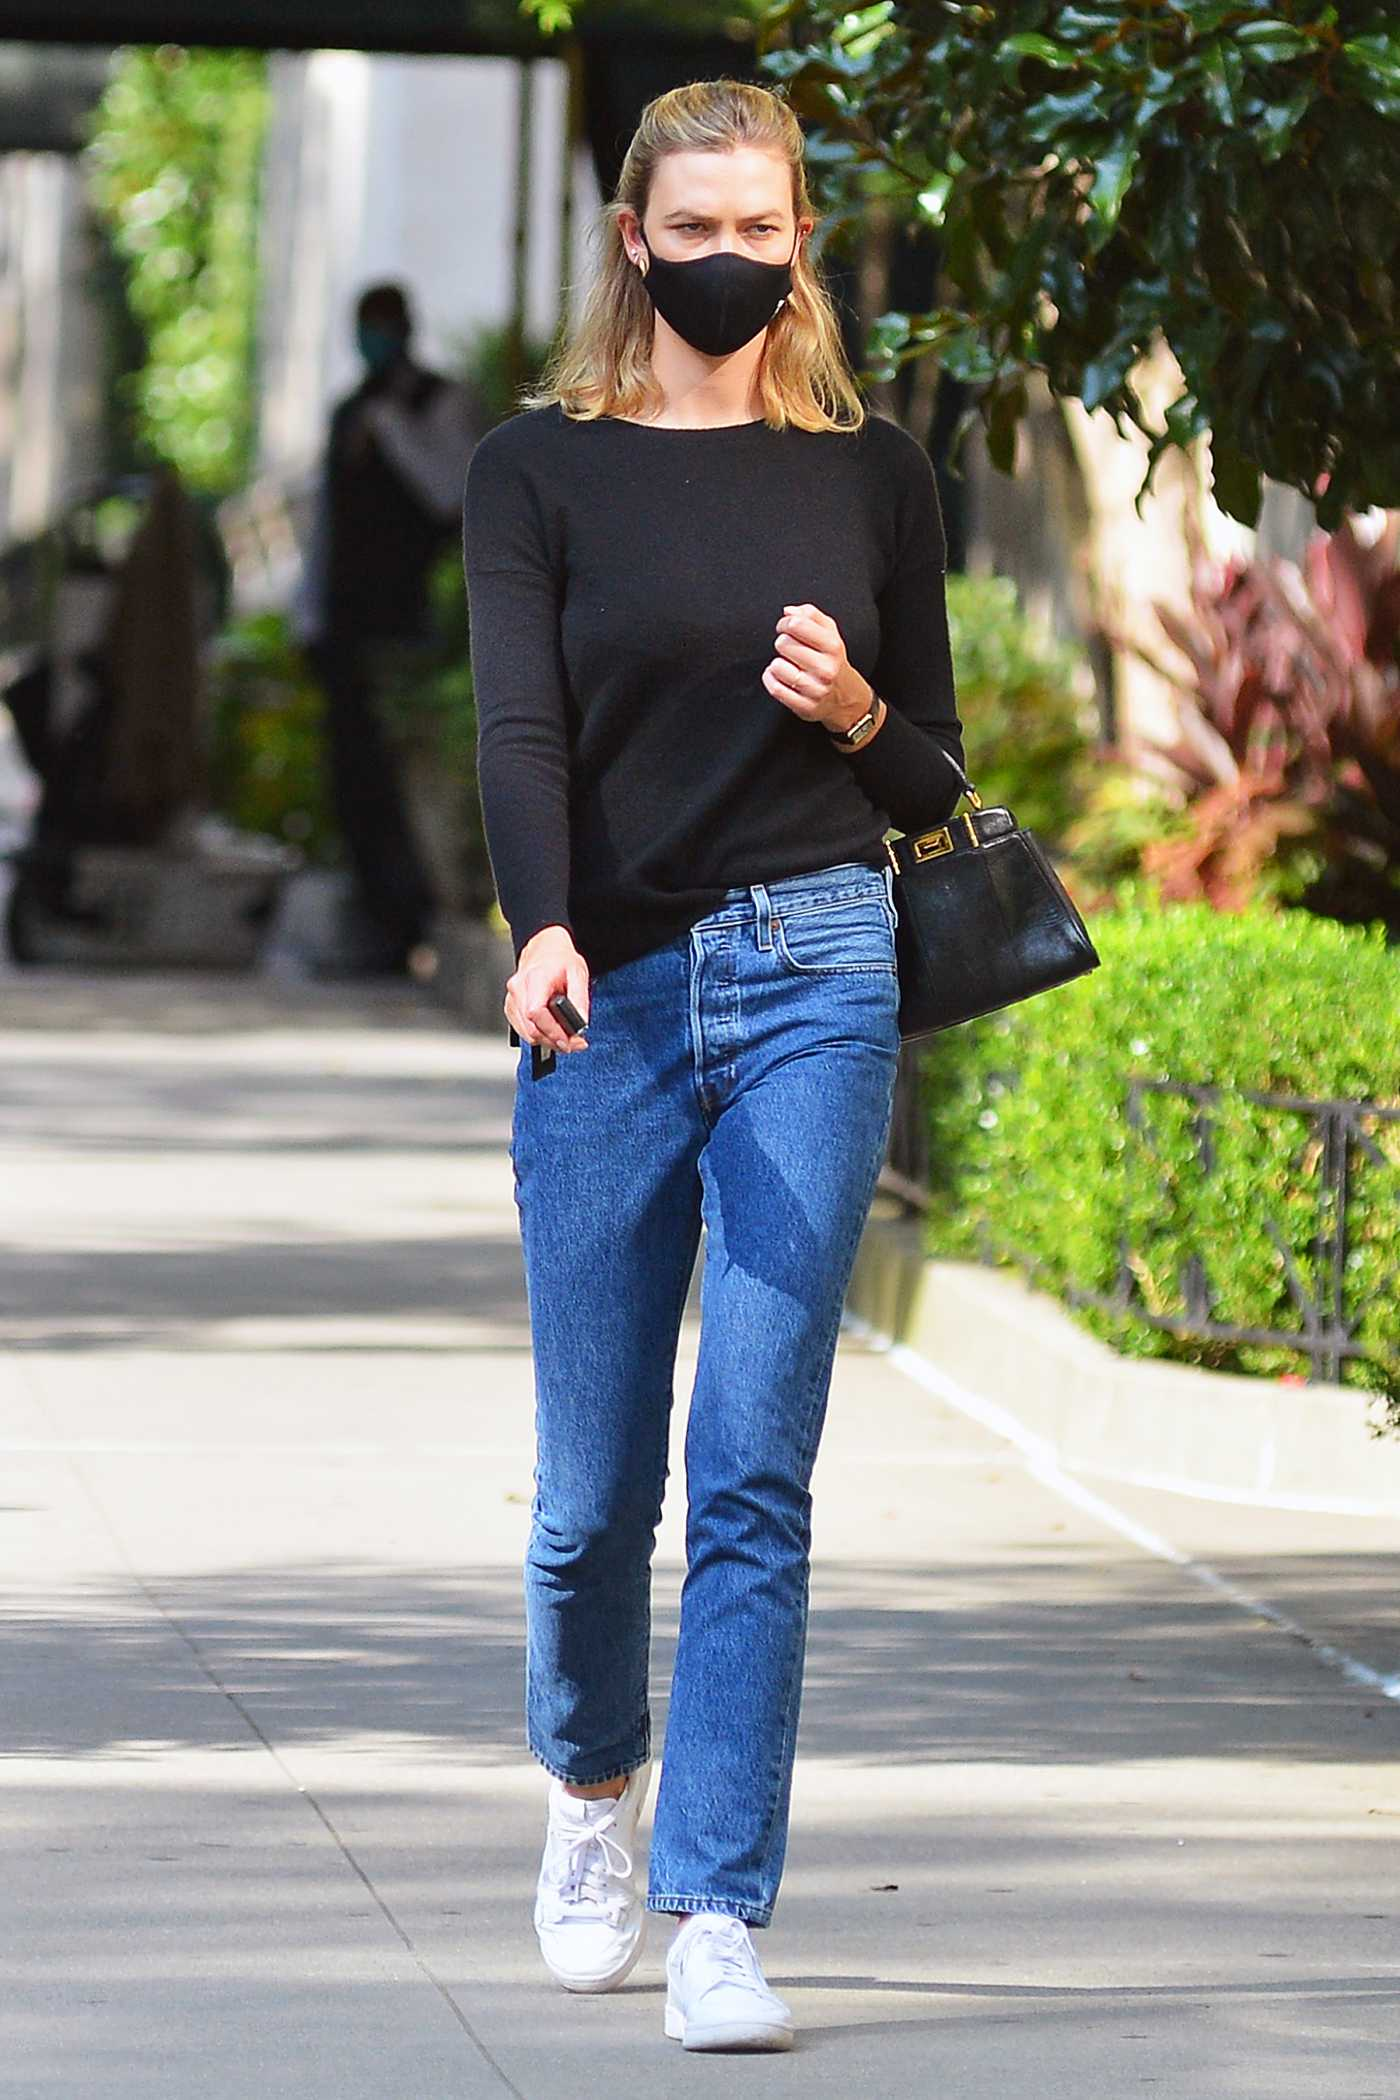 Karlie Kloss in a Black Protective Mask Was Seen Ouut in New York 08/20/2020